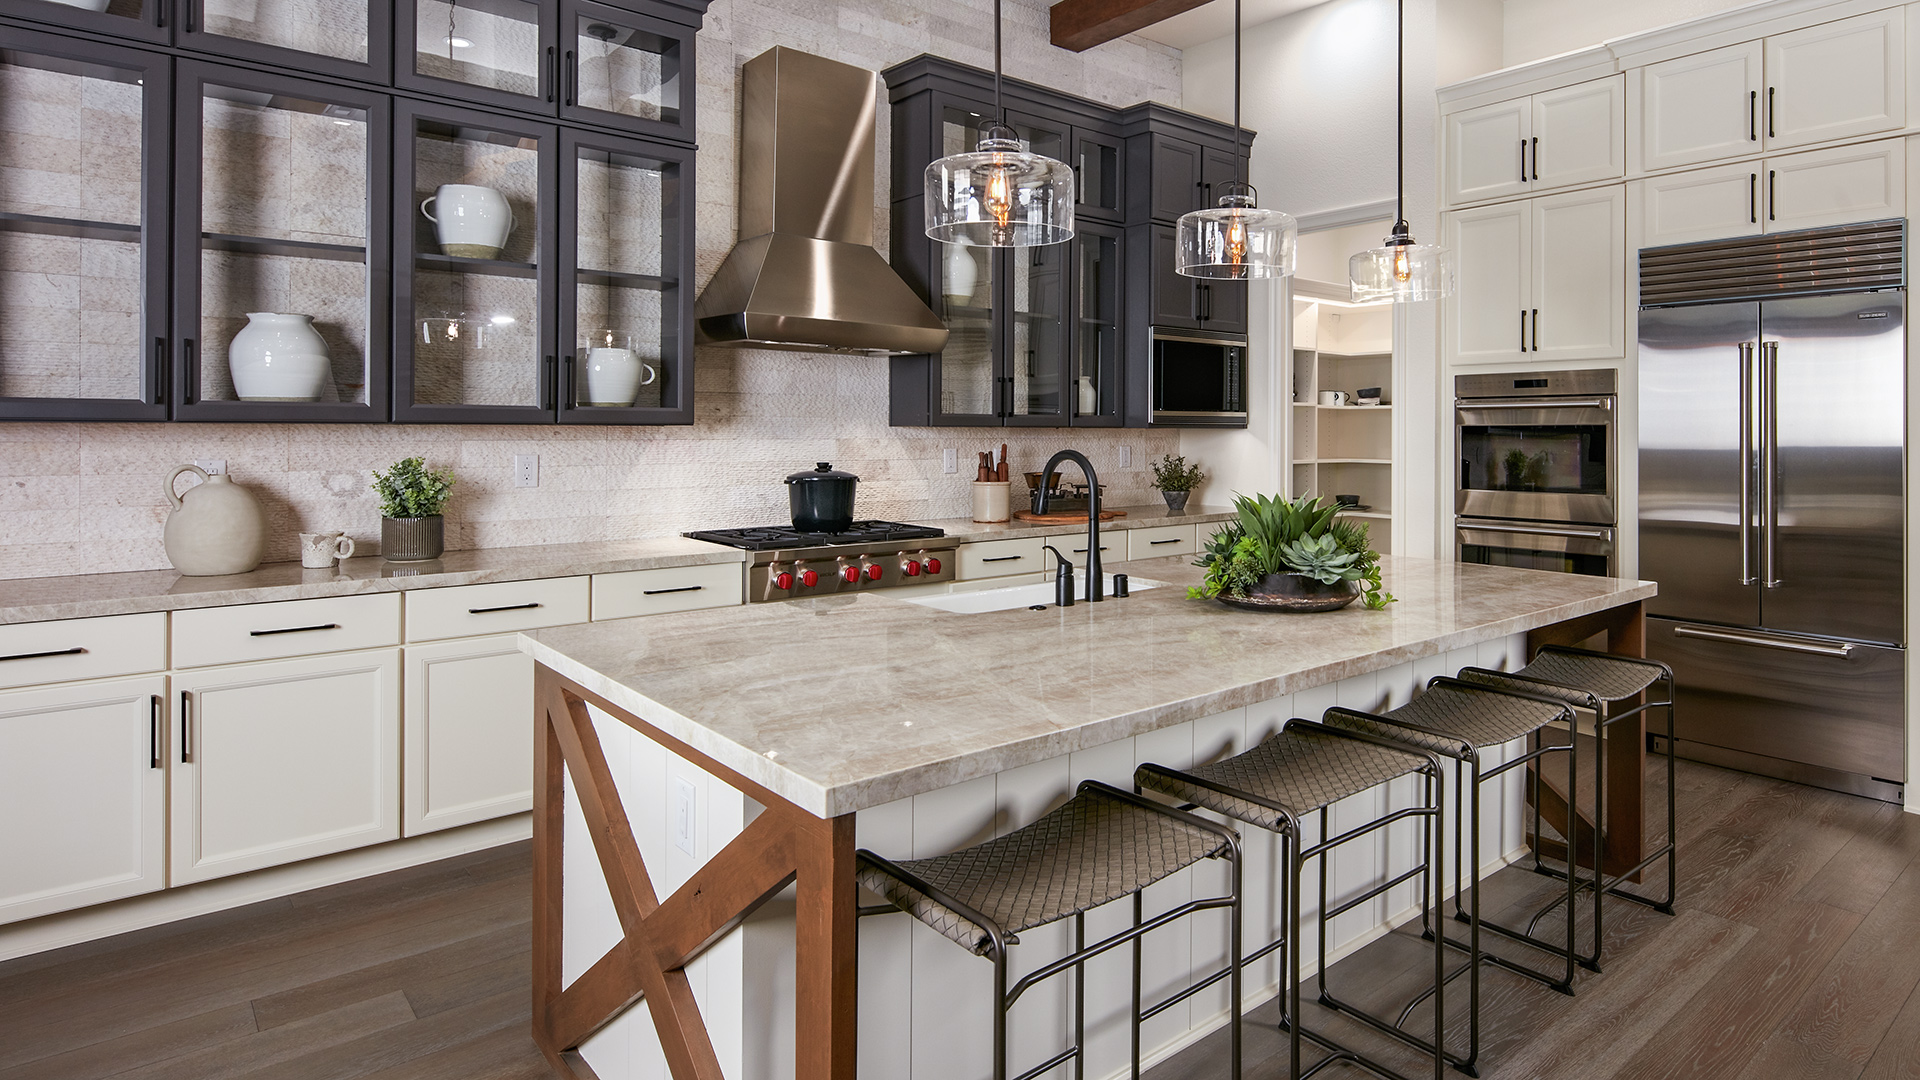 Allure kitchen with gourmet appliances and oversized pantry